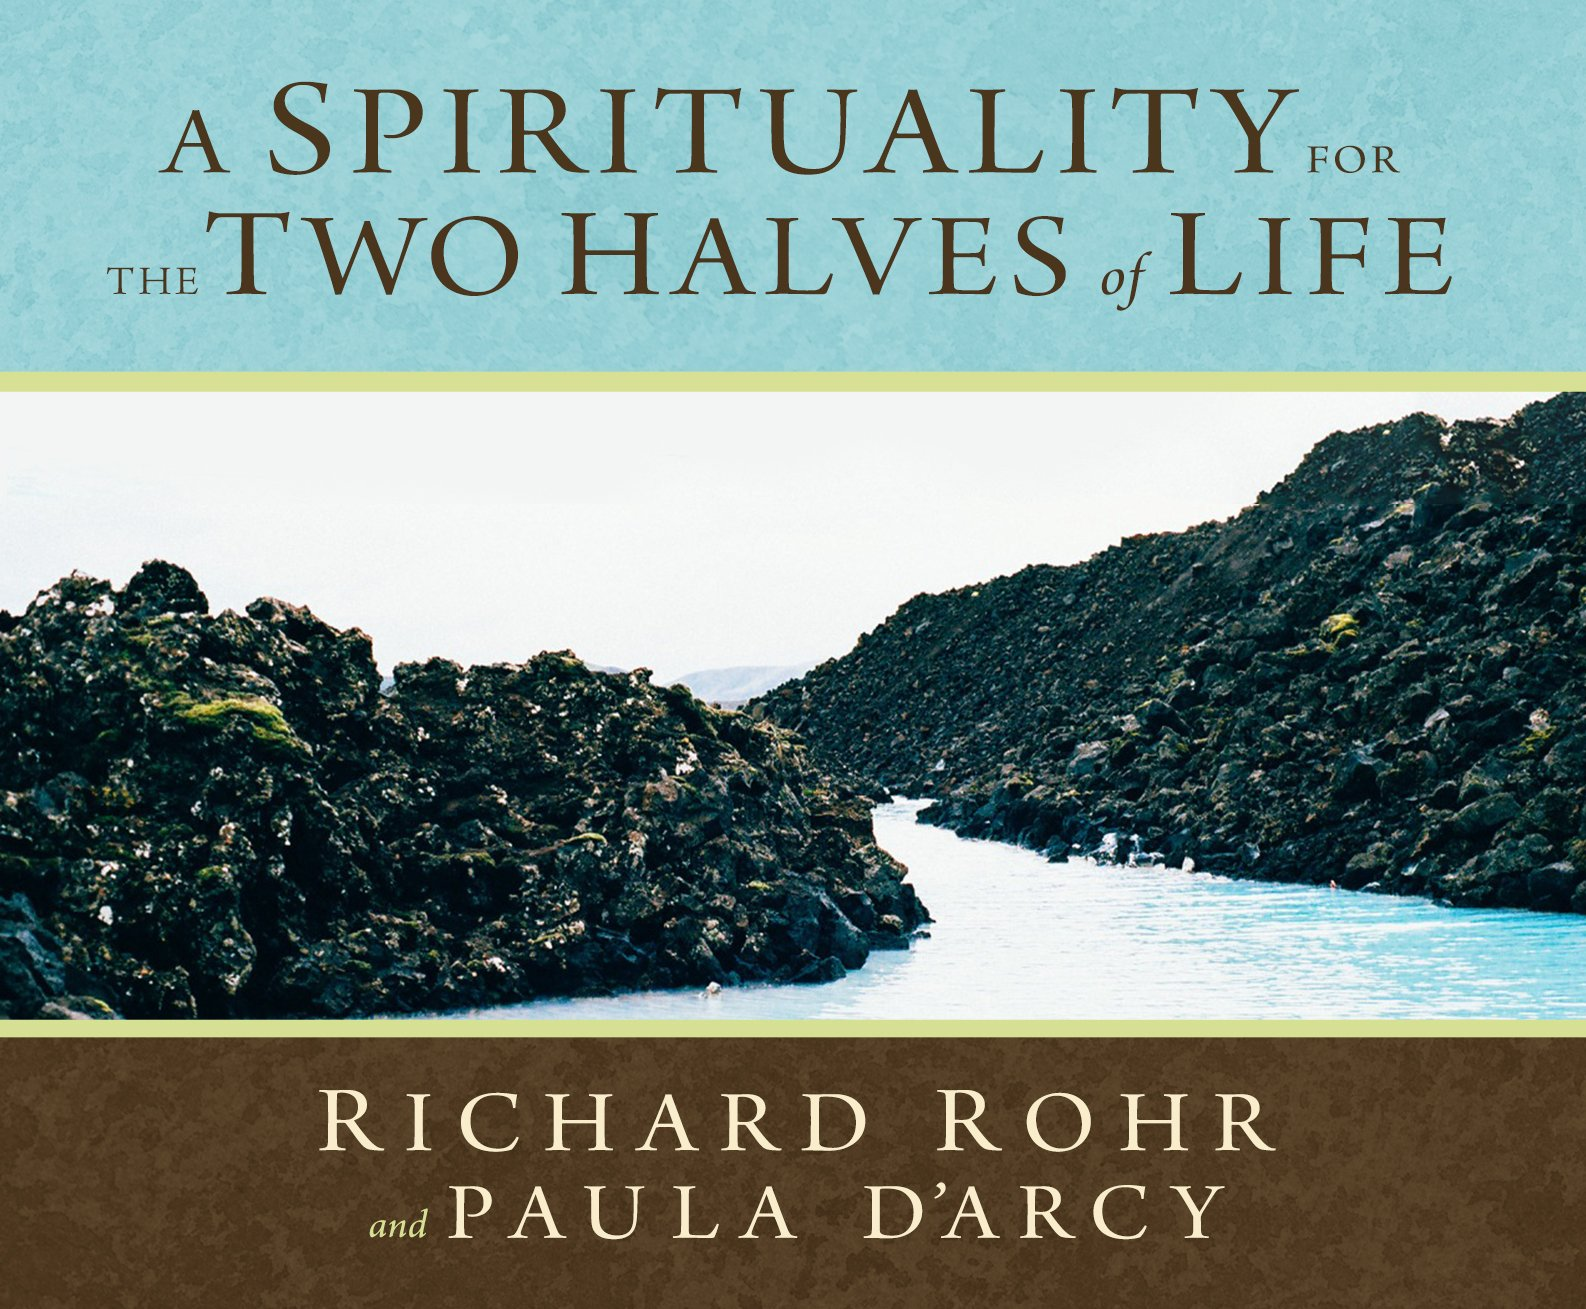 A Spirituality For The Two Halves Of Life: Richard Rohr Ofm, Paula  D'arcy: 9781616360931: Amazon: Books